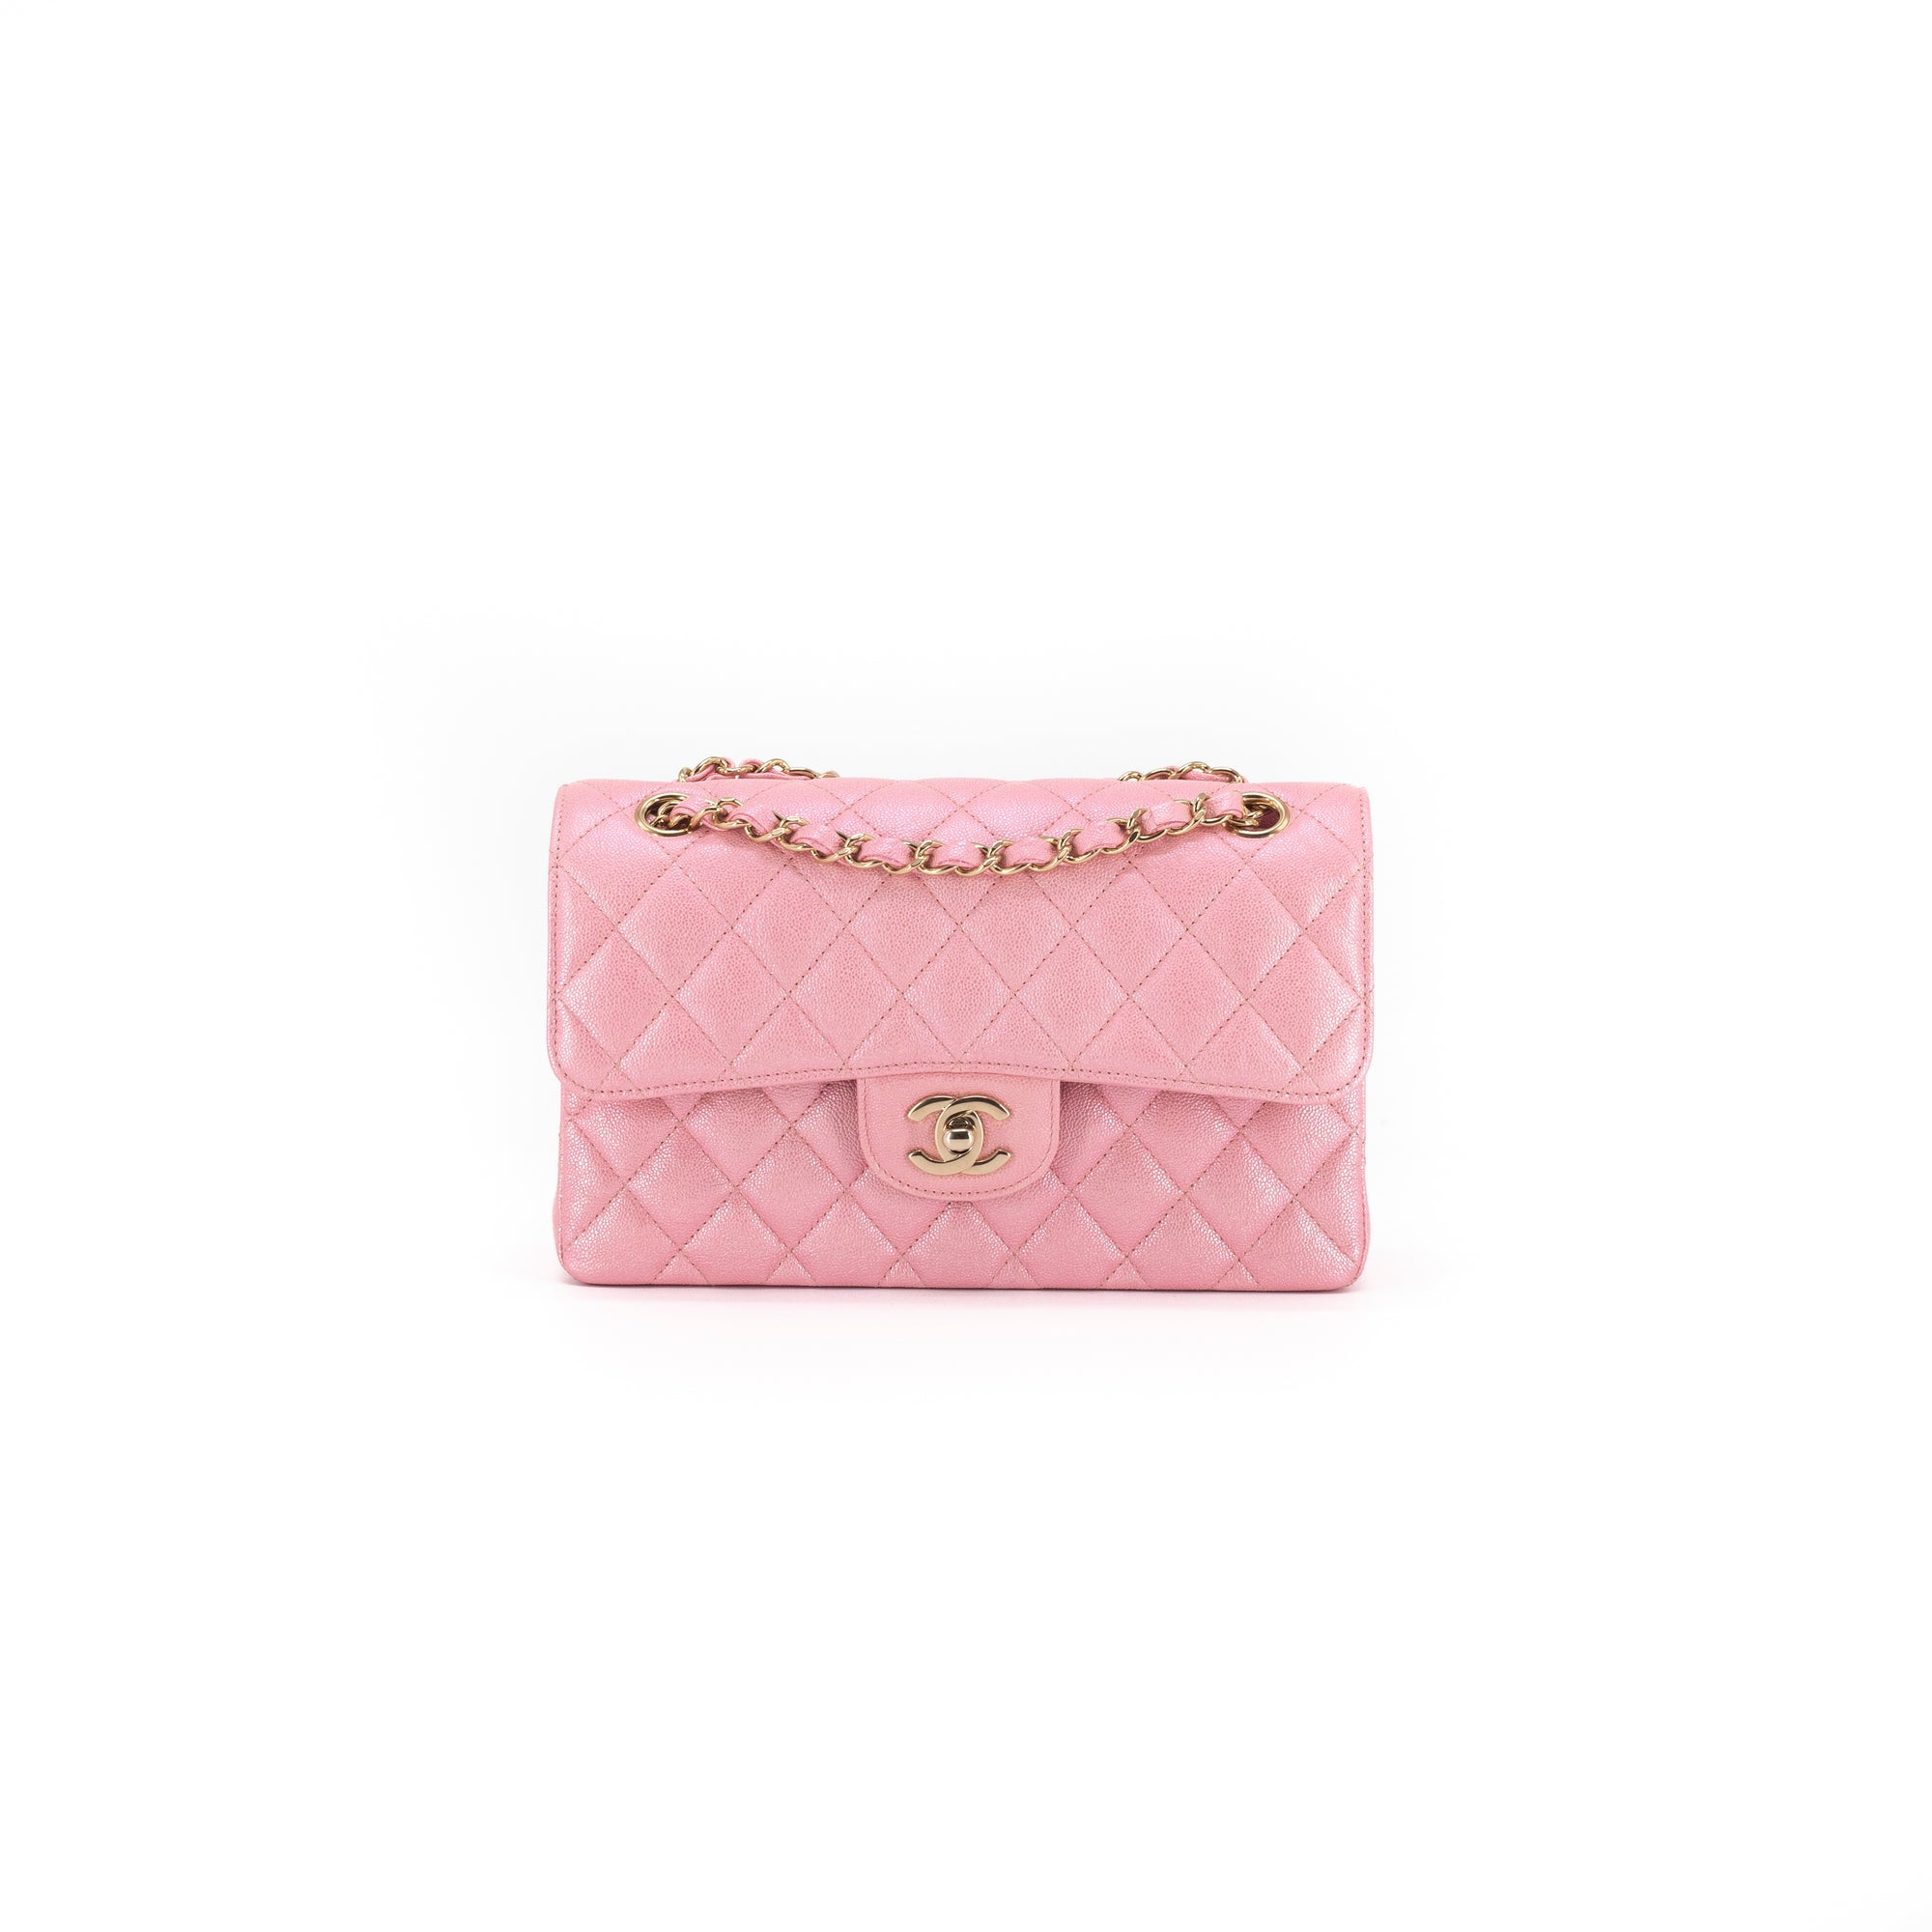 31865ecda891 Chanel 19S Iridescent Pink Small Classic Flap - THE PURSE AFFAIR